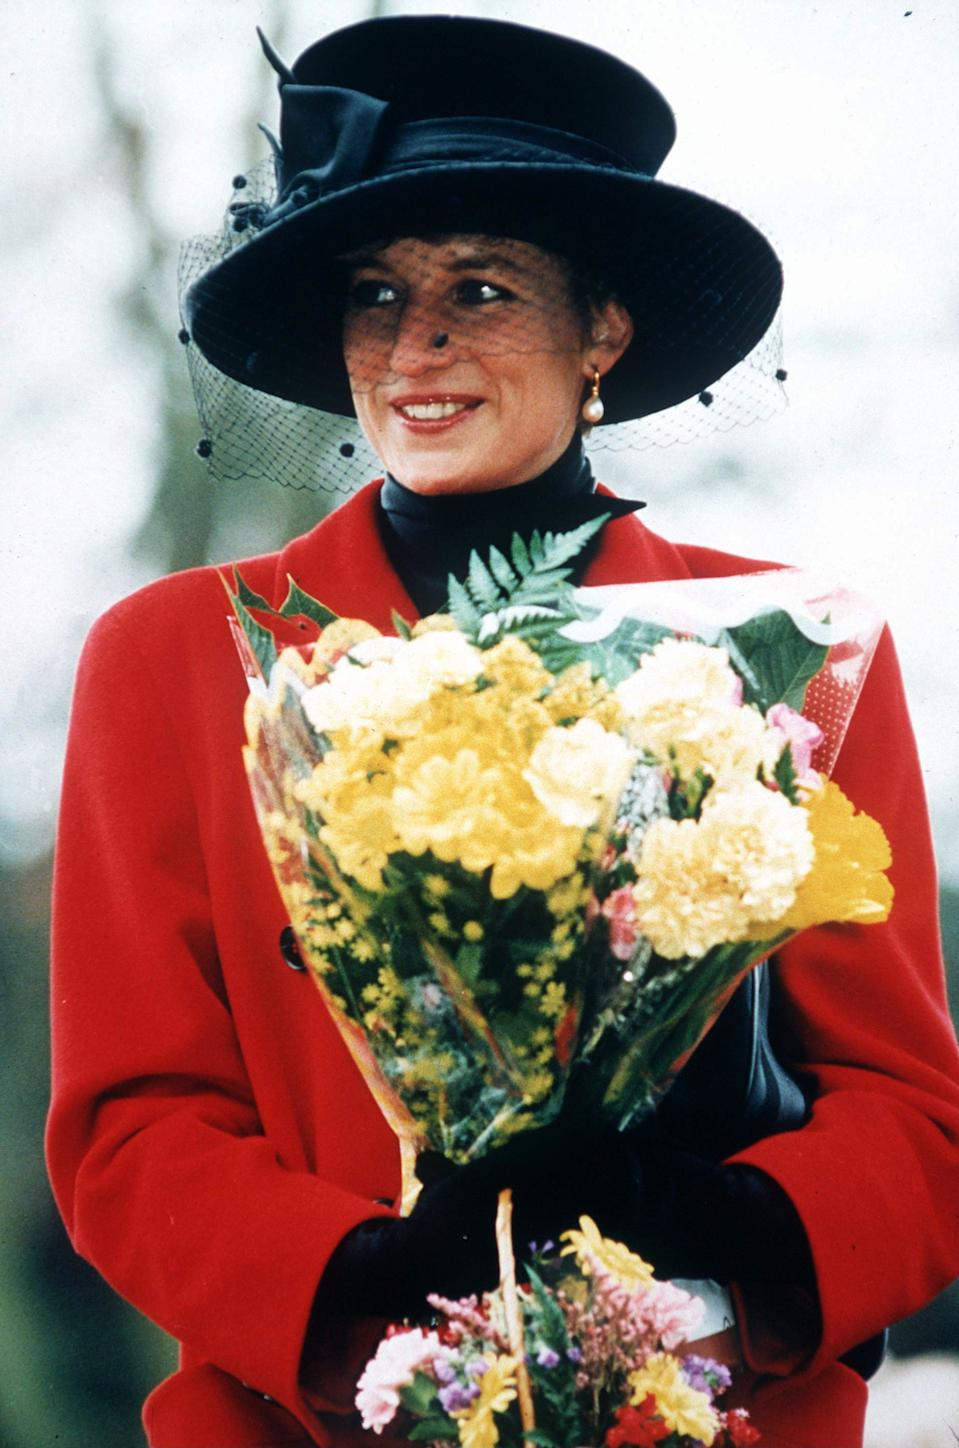 Princess Diana in a red coat and black hat at Sandringham on Christmas Day